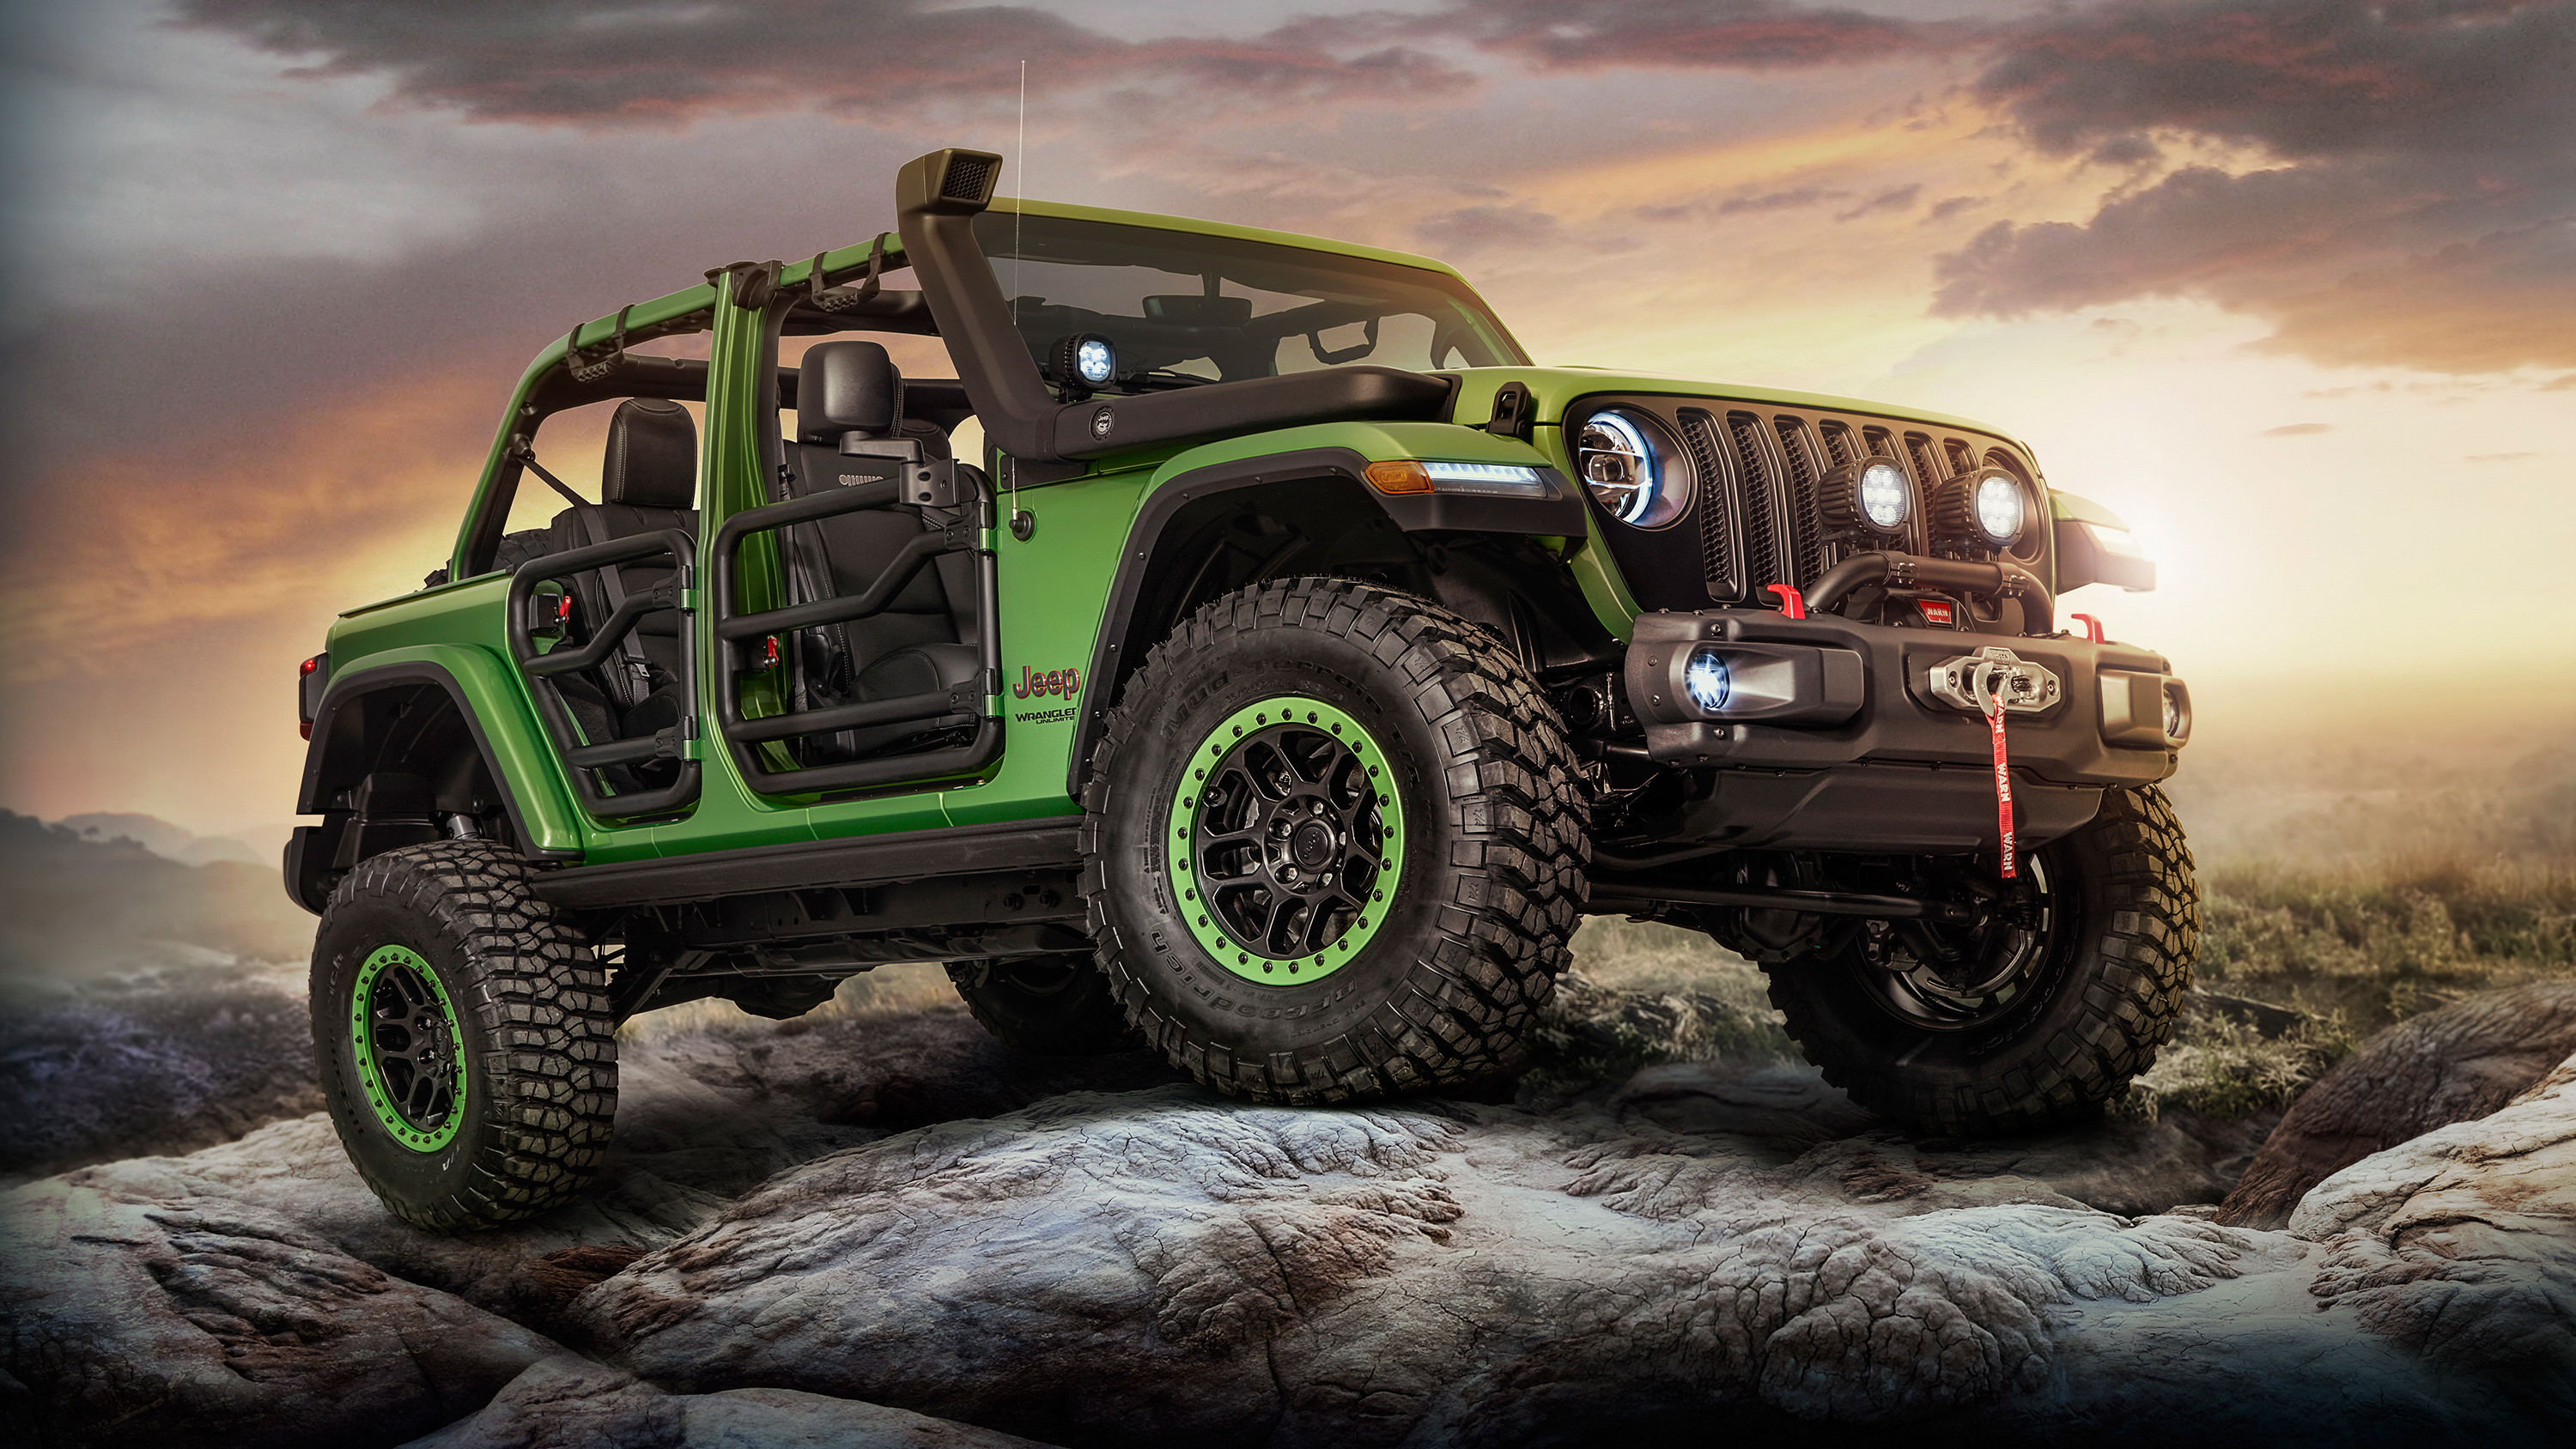 Res: 3000x1688, 2018 Jeep Wrangler Unlimited Rubicon Moparized